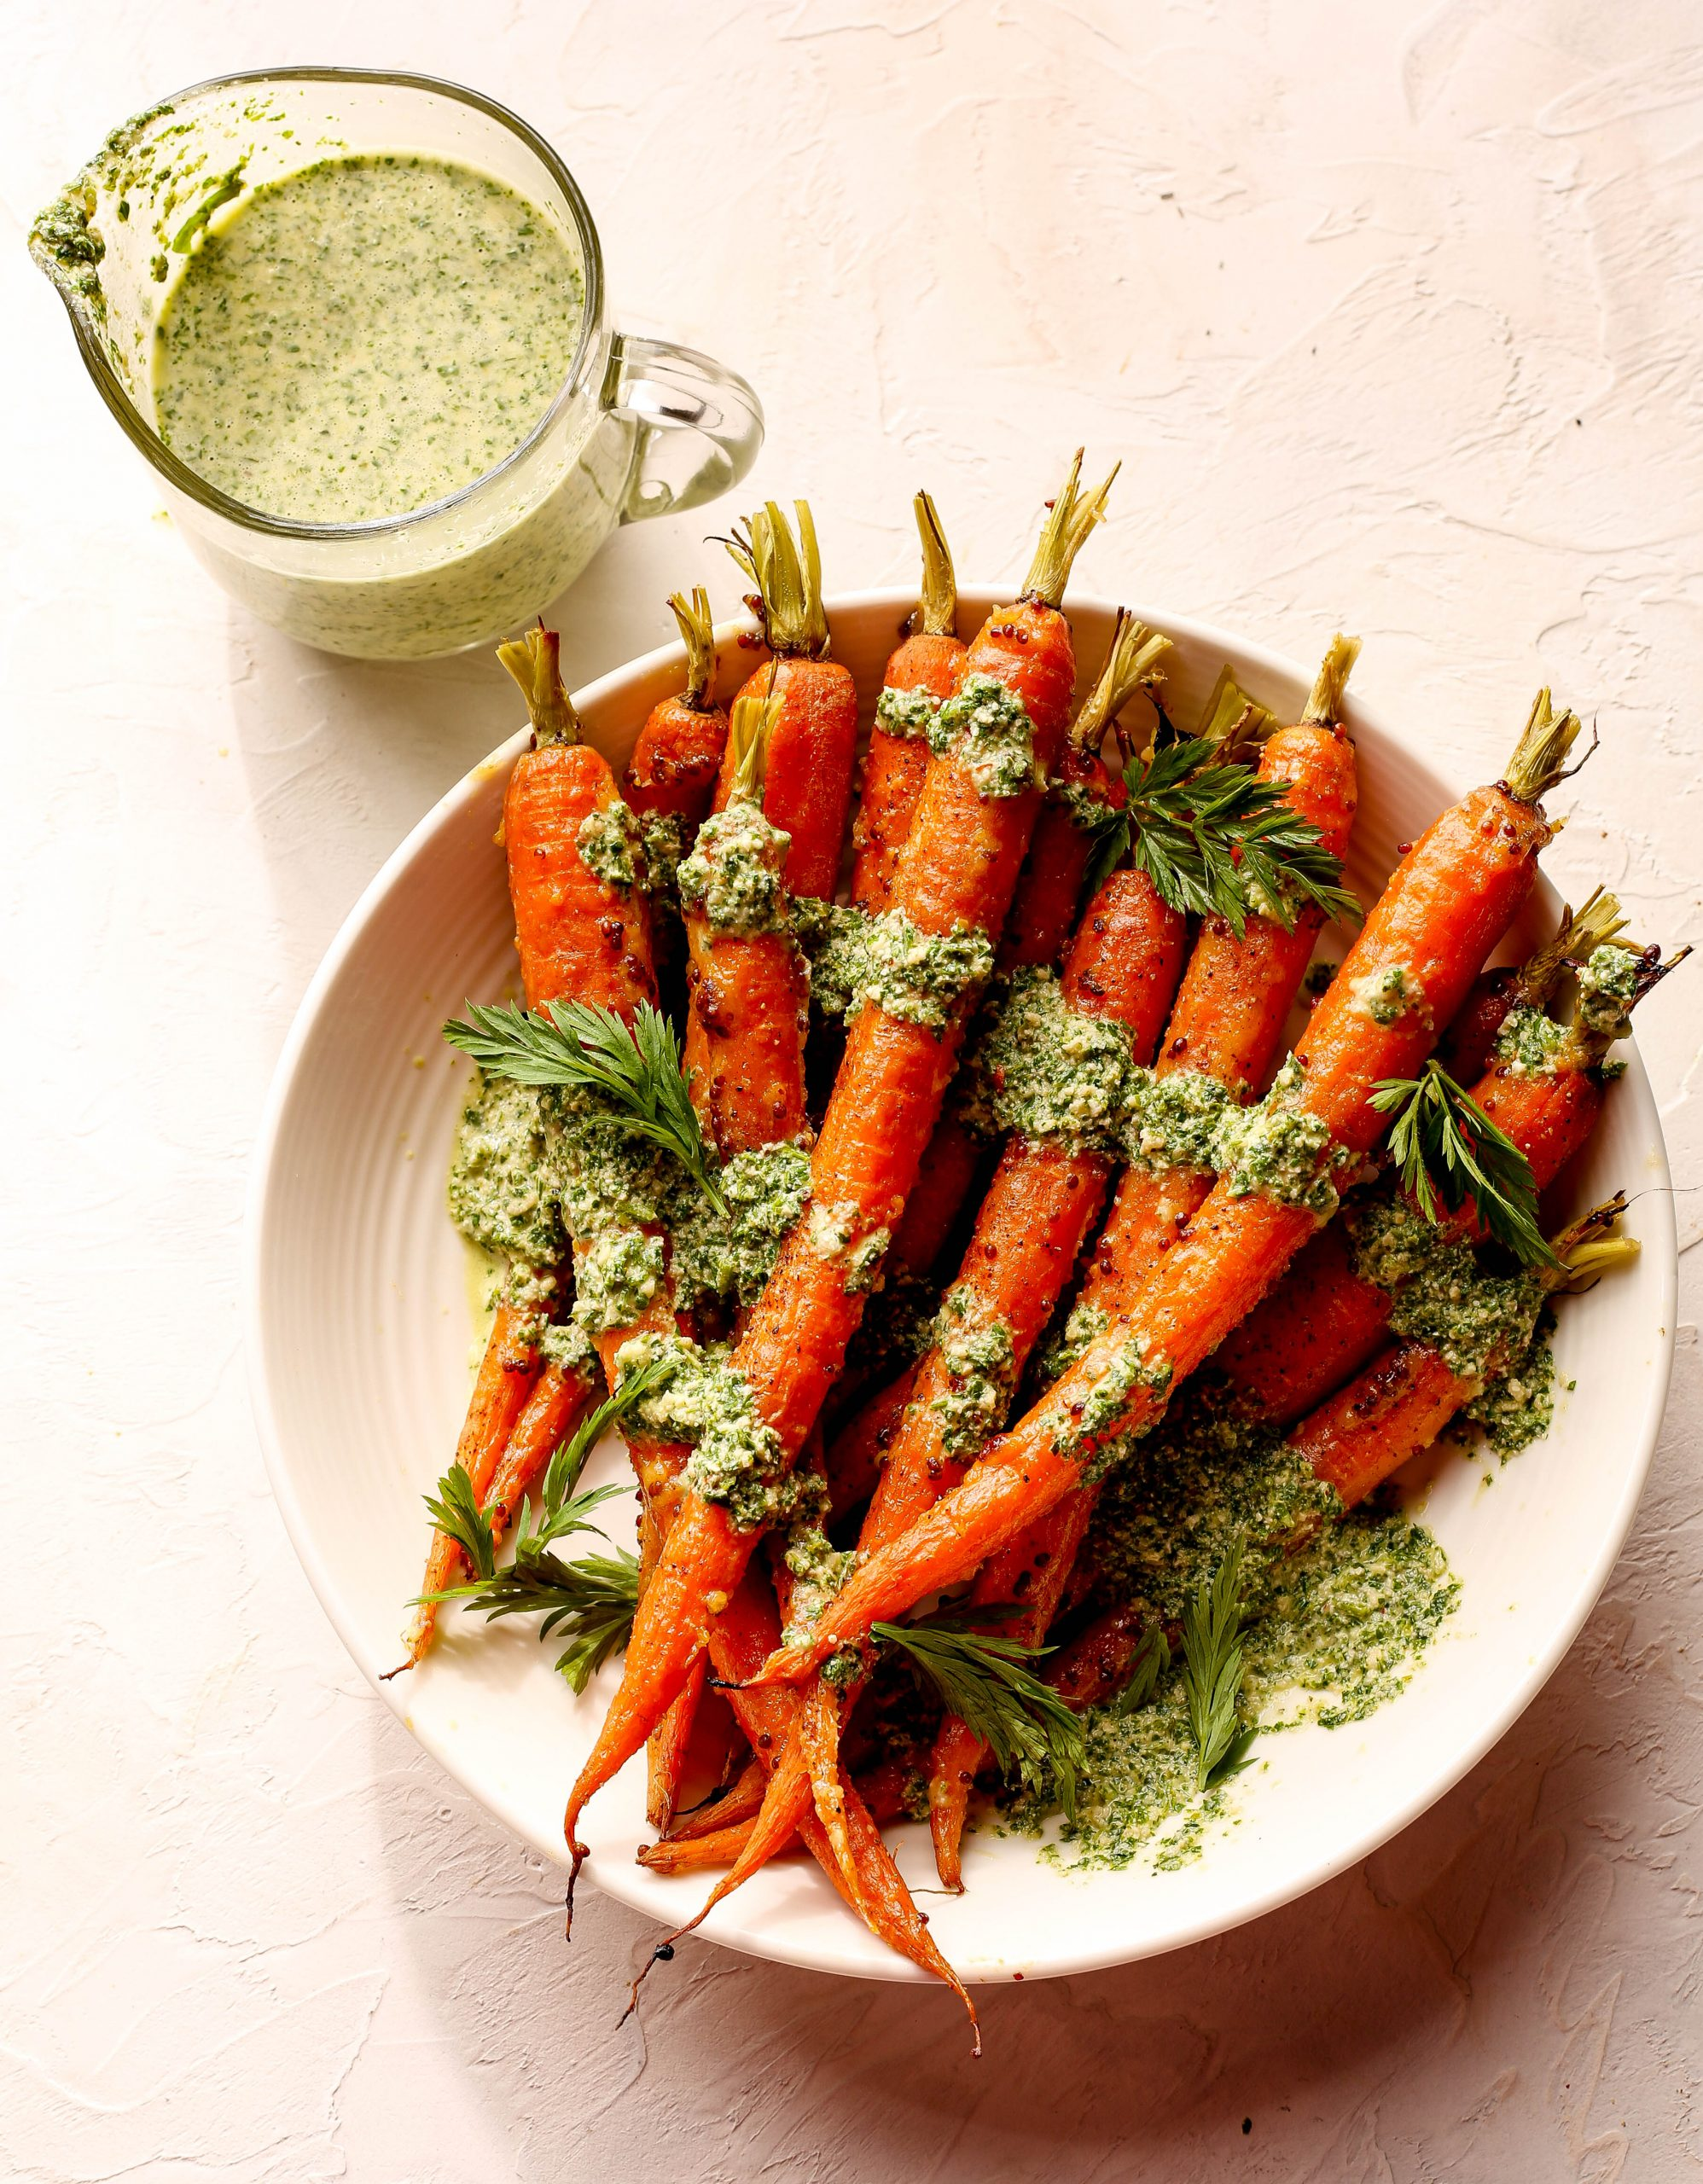 Savory Glazed Carrots with Carrot Top Pesto